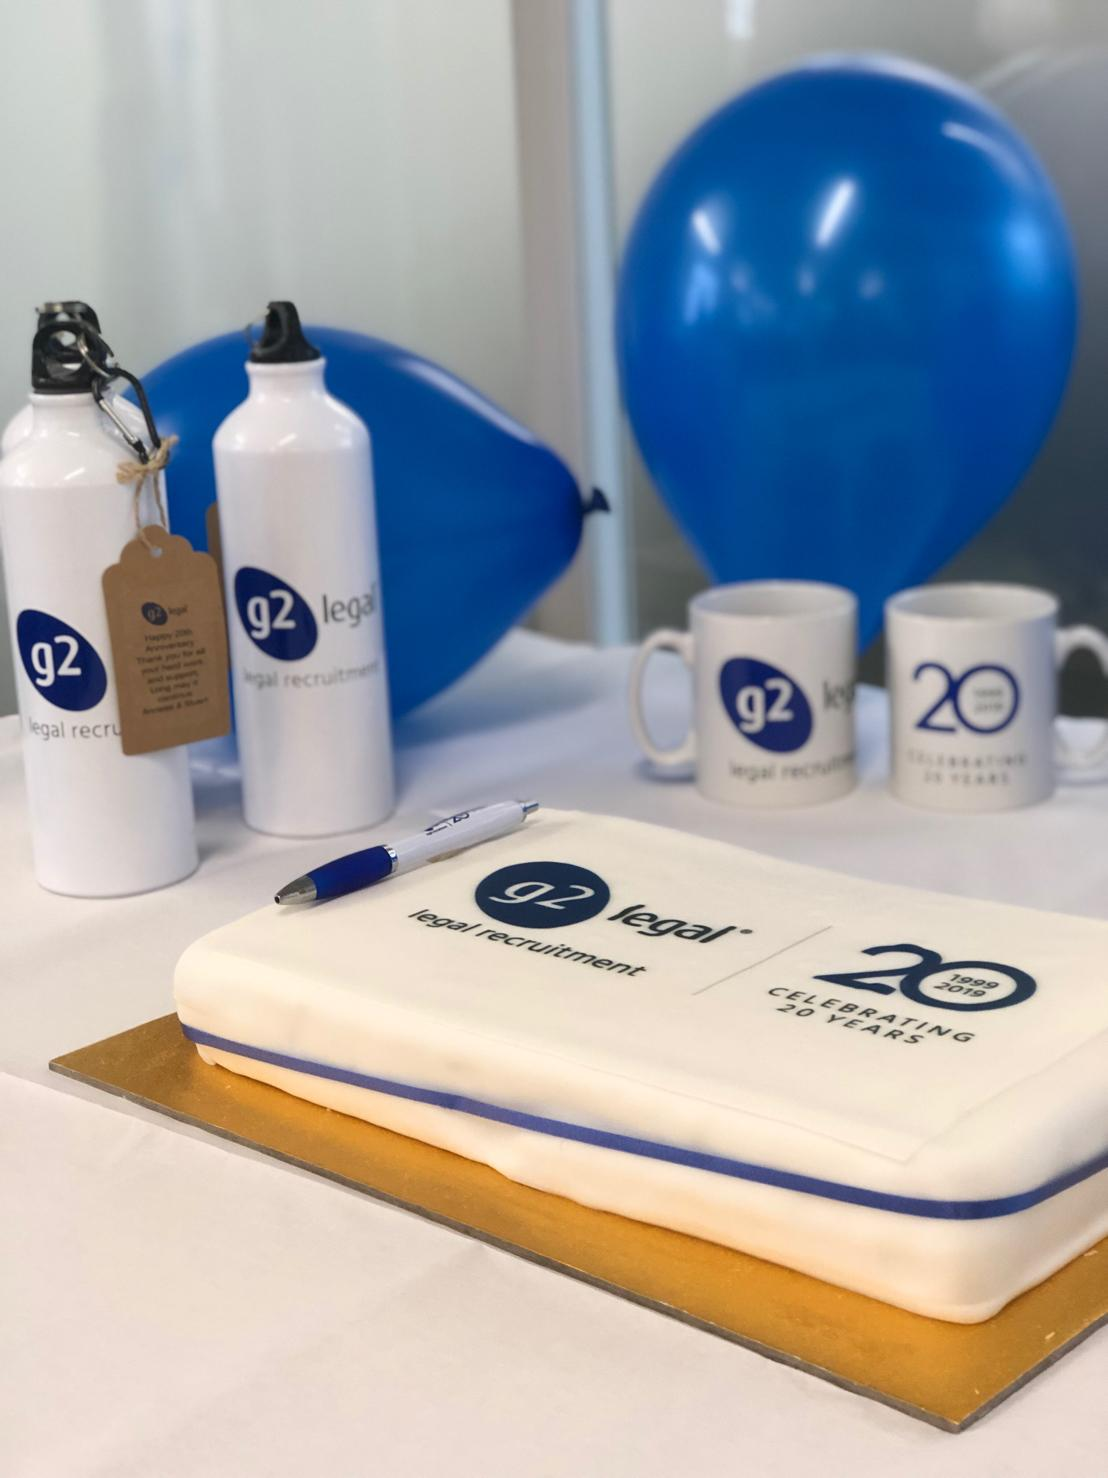 G2 Legal Turns 20